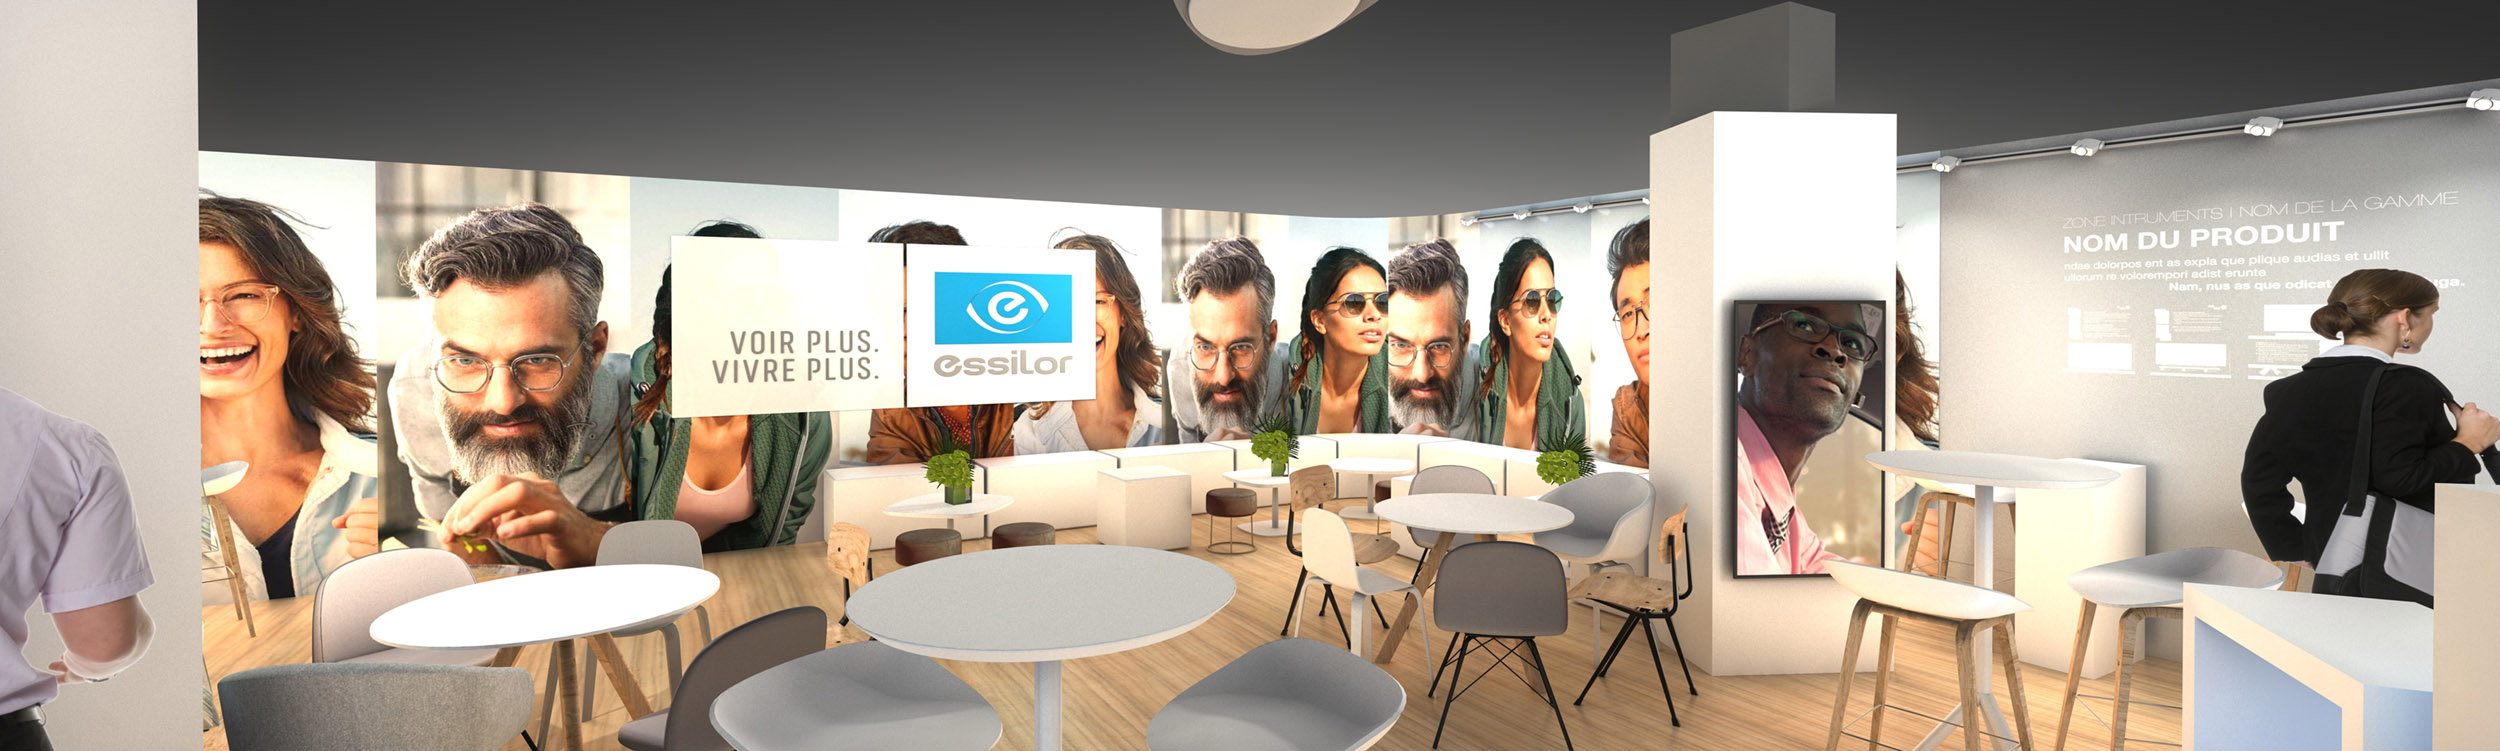 stand booth essilor sfo 14.jpg